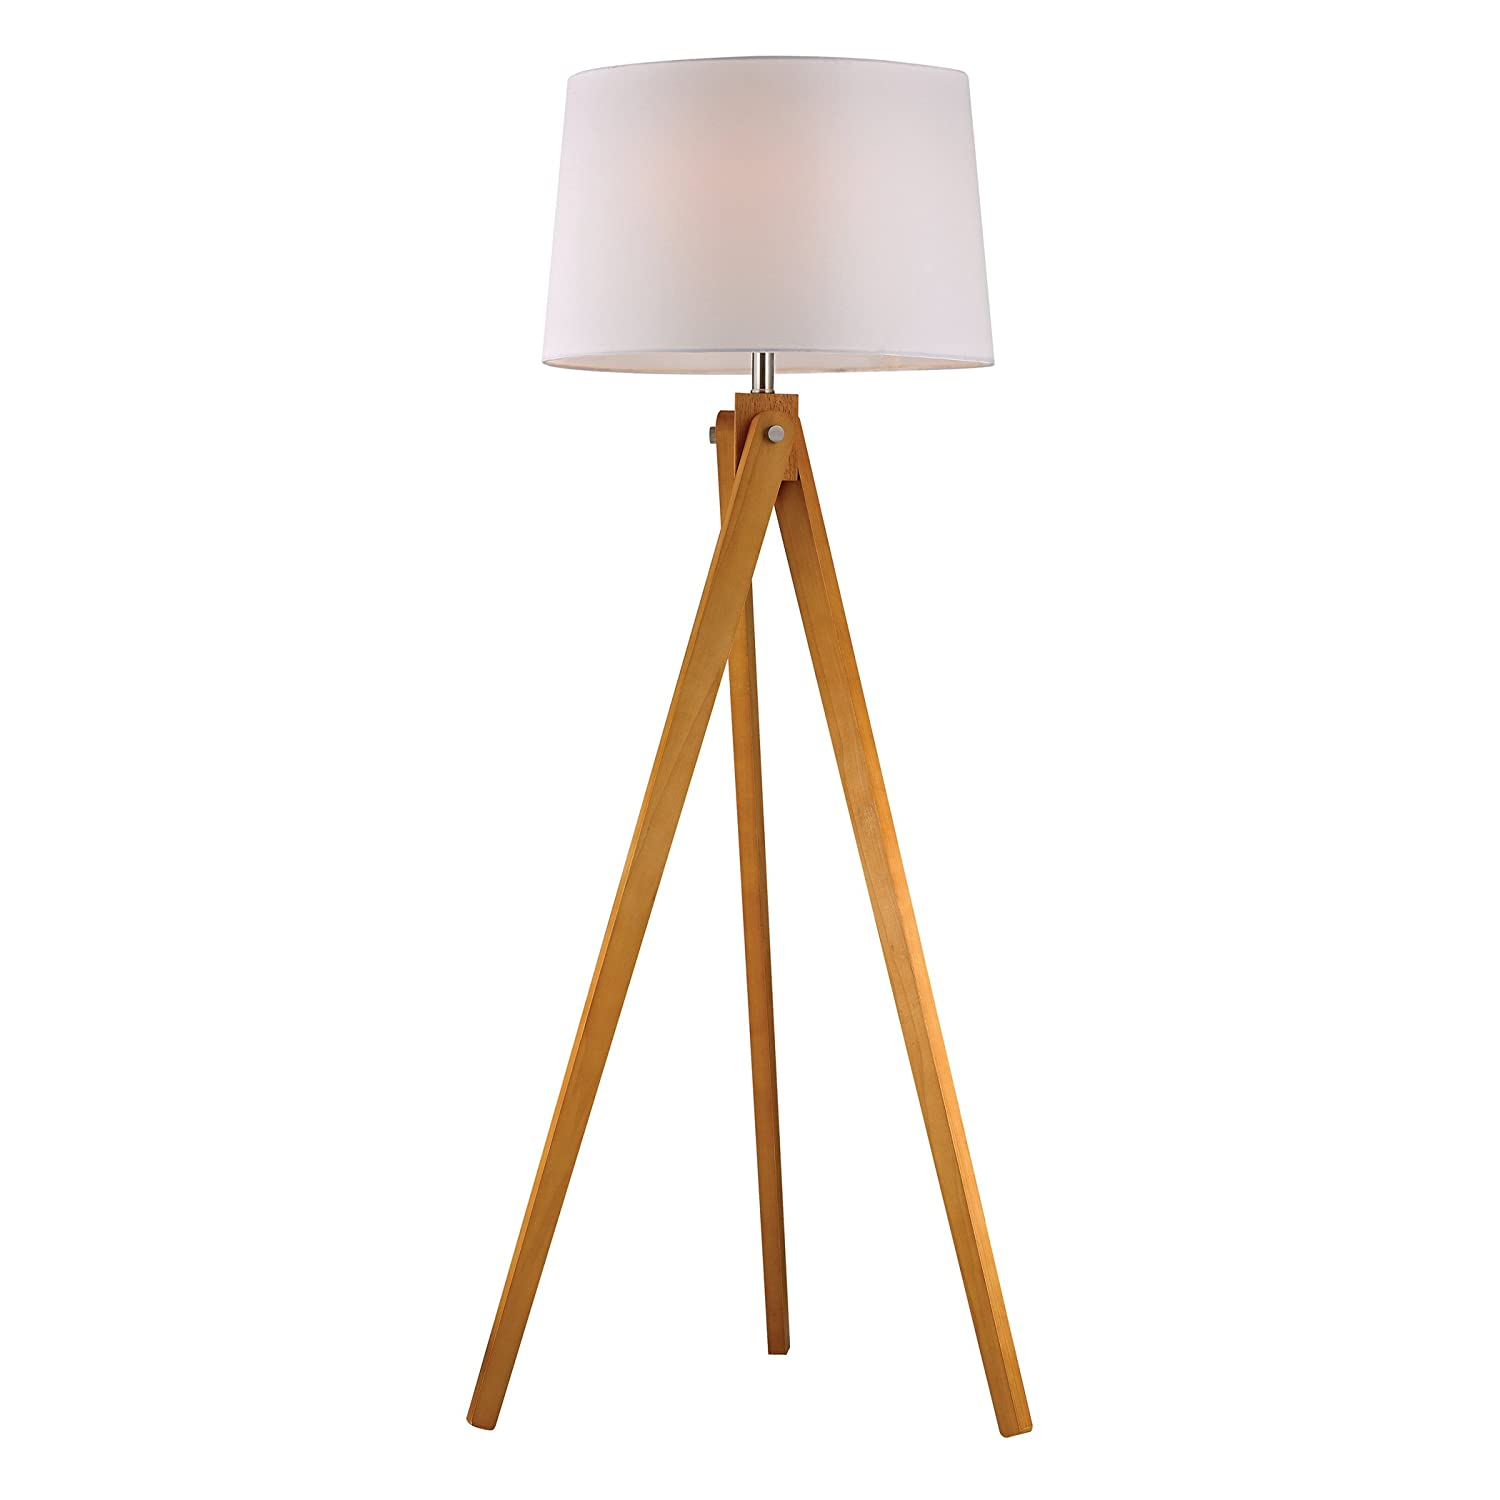 Dimond Lighting D2469 Wooden Tripod Floor Lamp, Natural Wood Tone ...